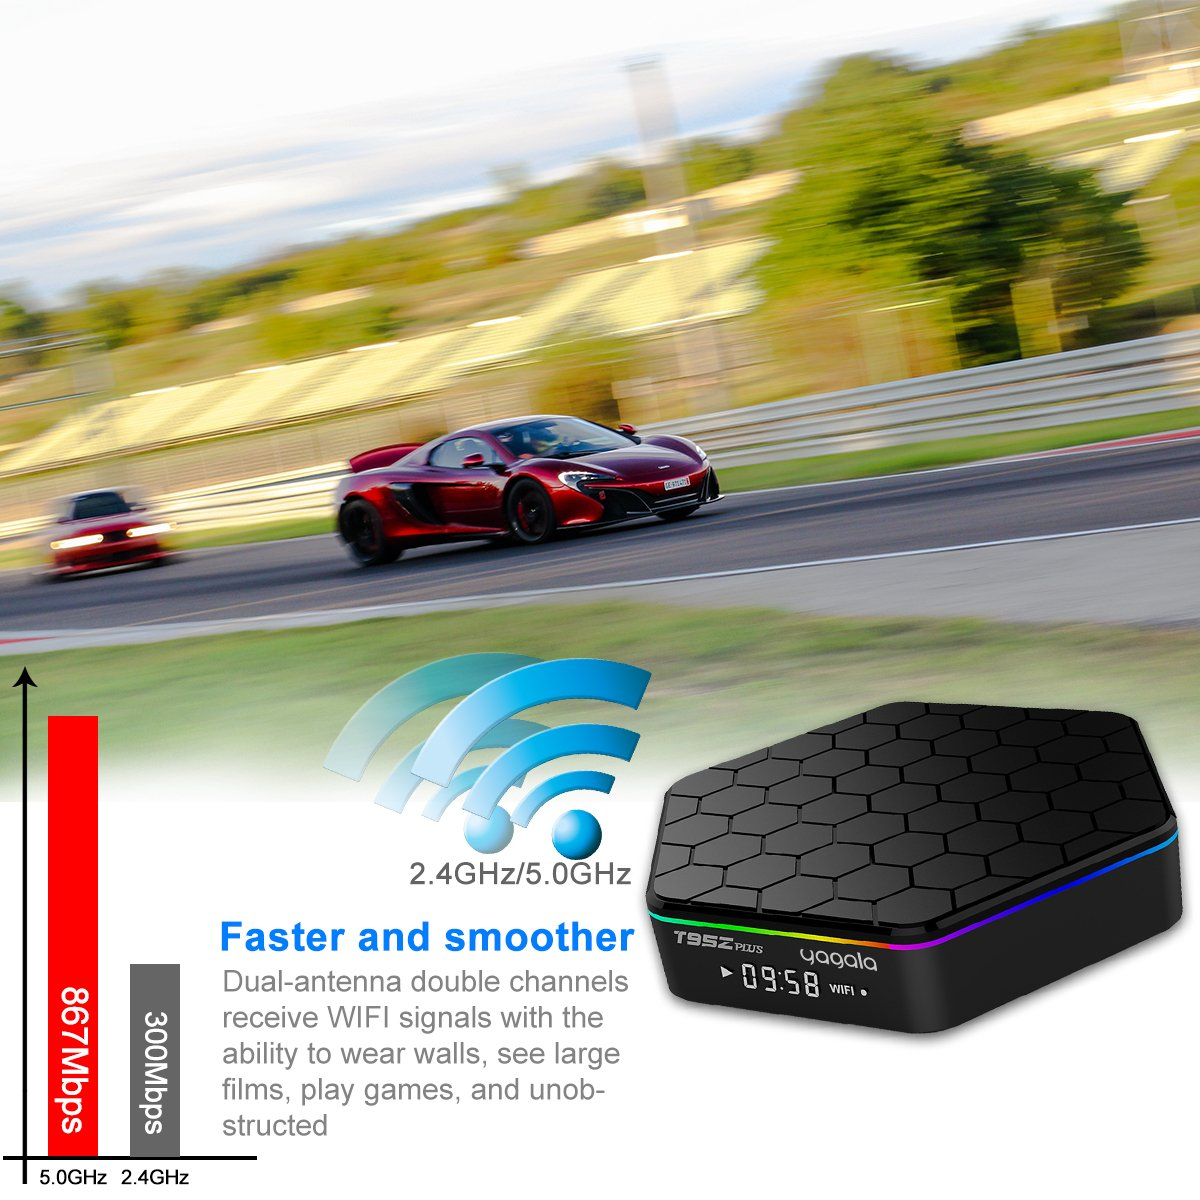 YAGALA T95Z Plus Android 7.1 TV Box Amlogic S912 Octa Core 3GB/32GB Dual Band WiFi 2.4GHz/5.0GHz 4K HD TV Box with Backlit Mini Wireless Keyboard by YAGALA (Image #5)